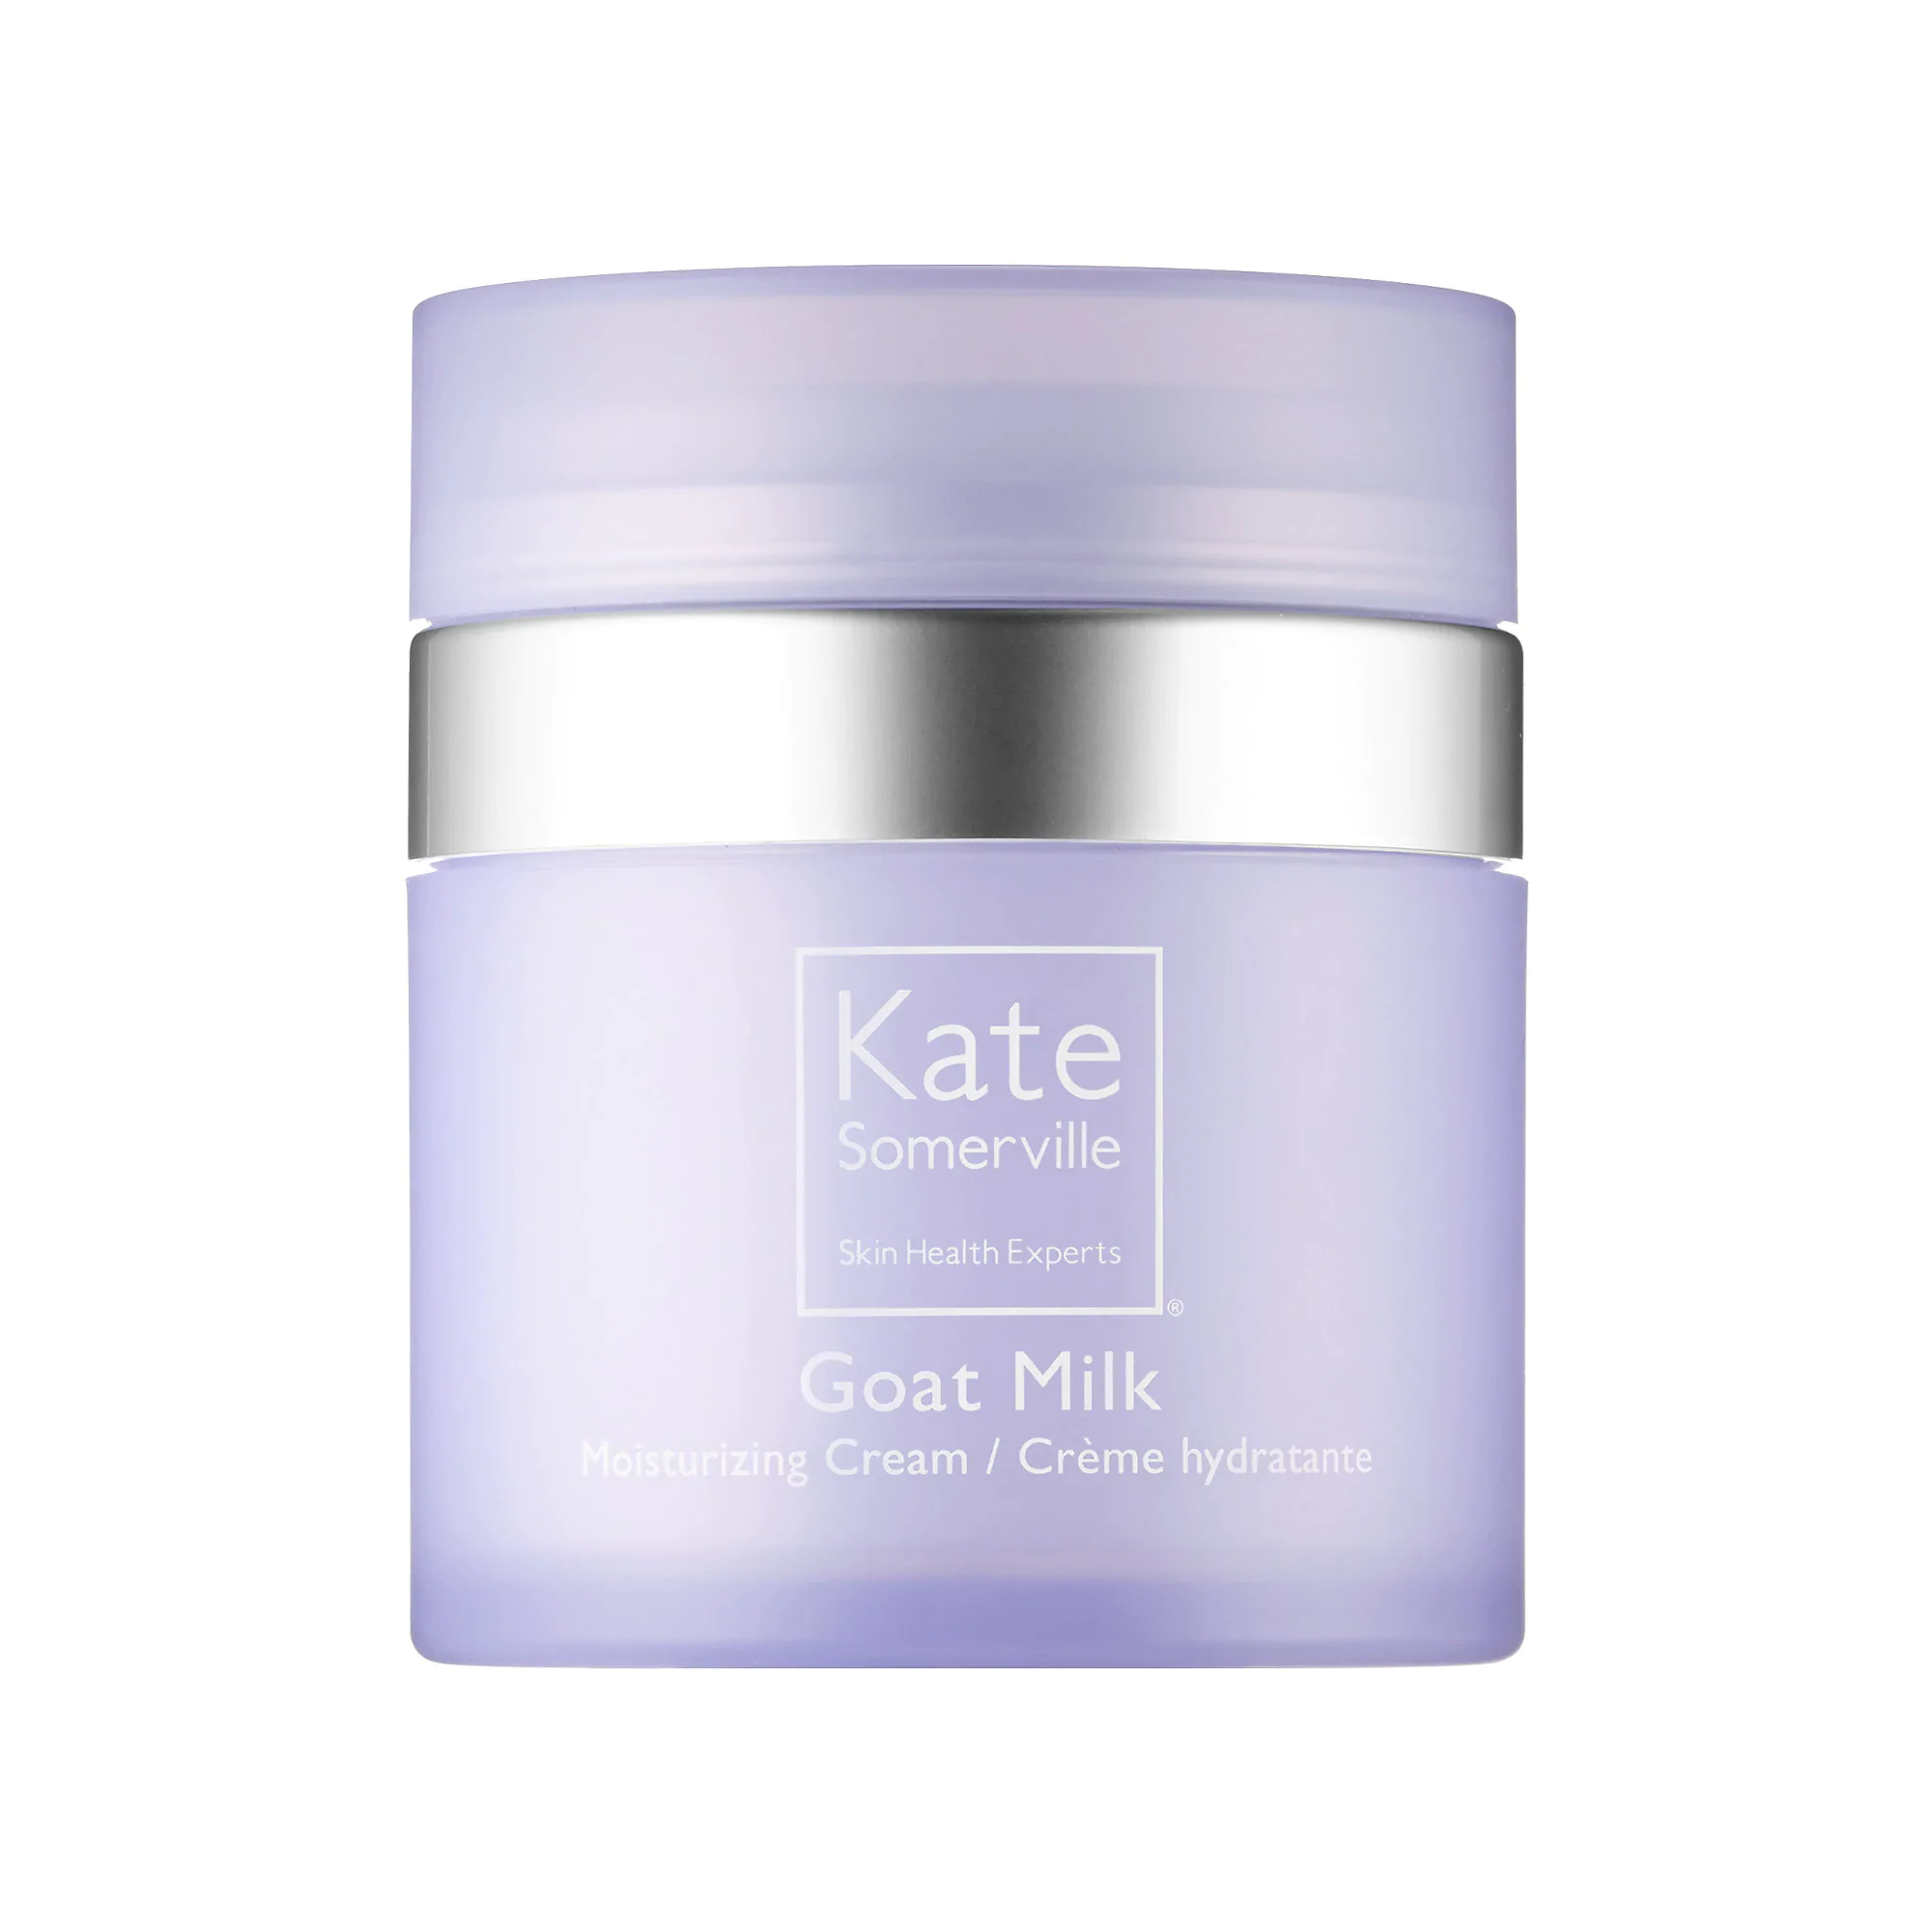 Kate Somerville-Goat Milk Moisturizing Cream